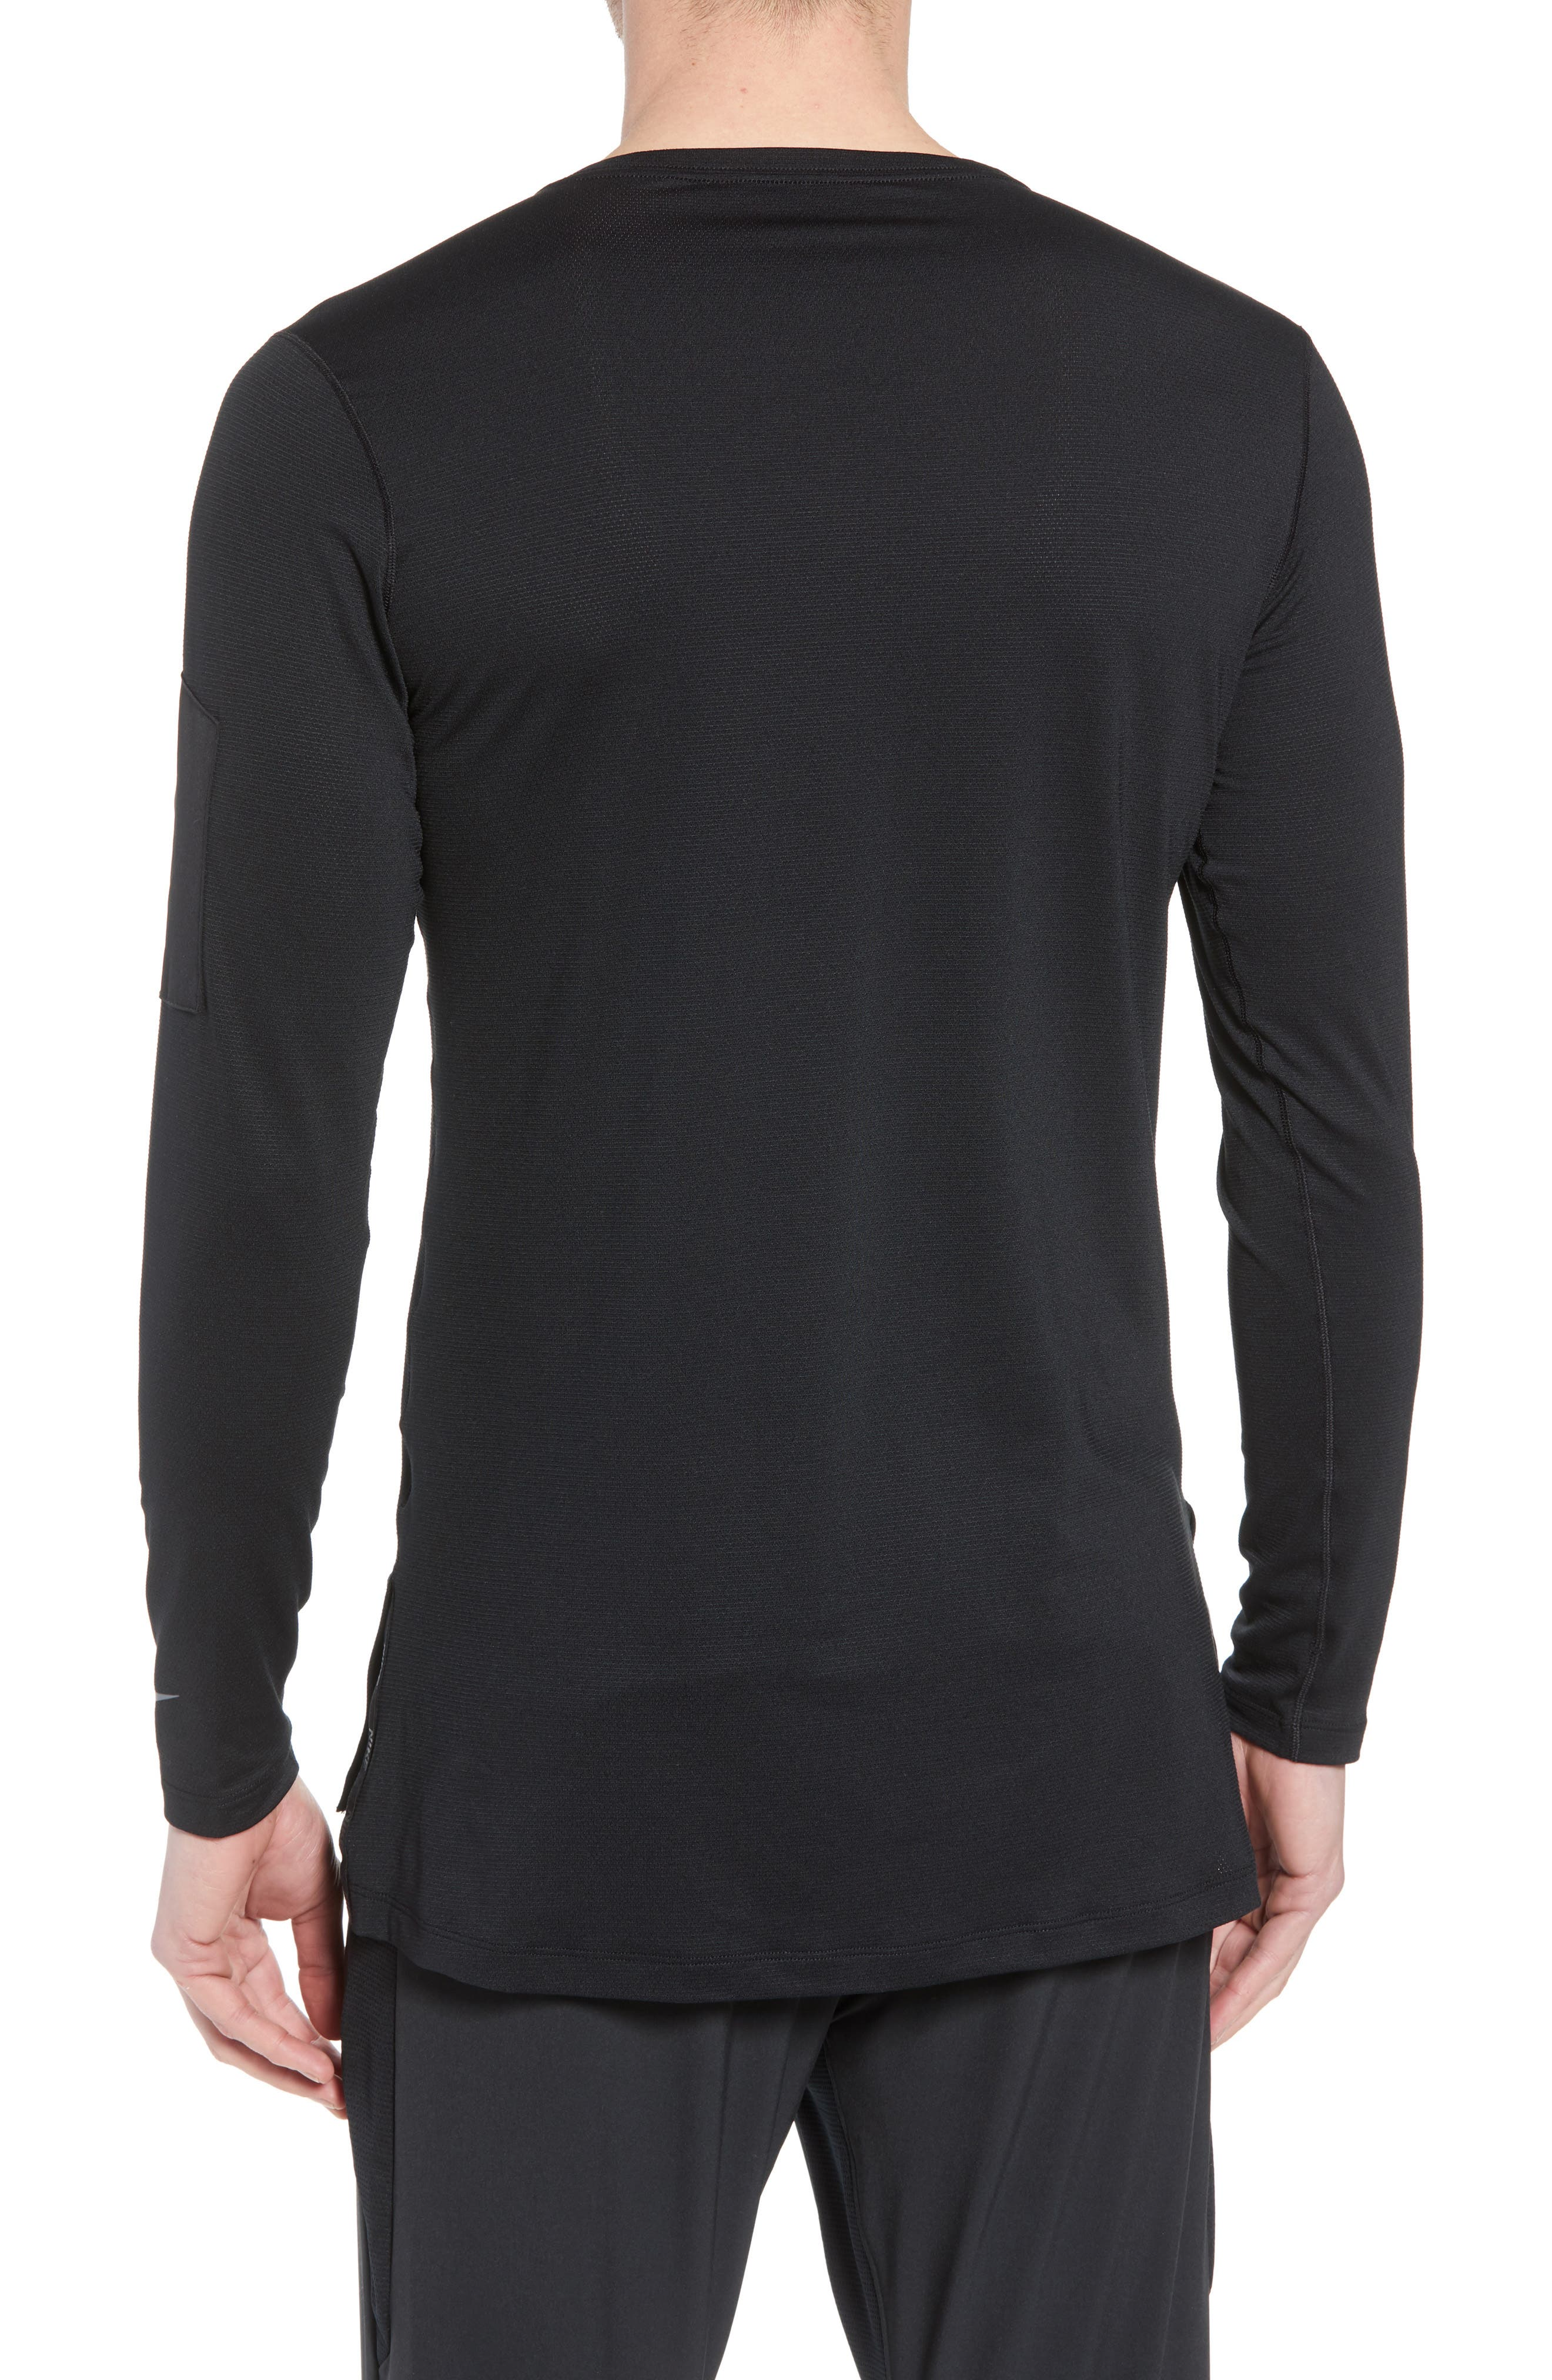 Pro Utility Fitted Training Top,                             Alternate thumbnail 2, color,                             Black/ Black